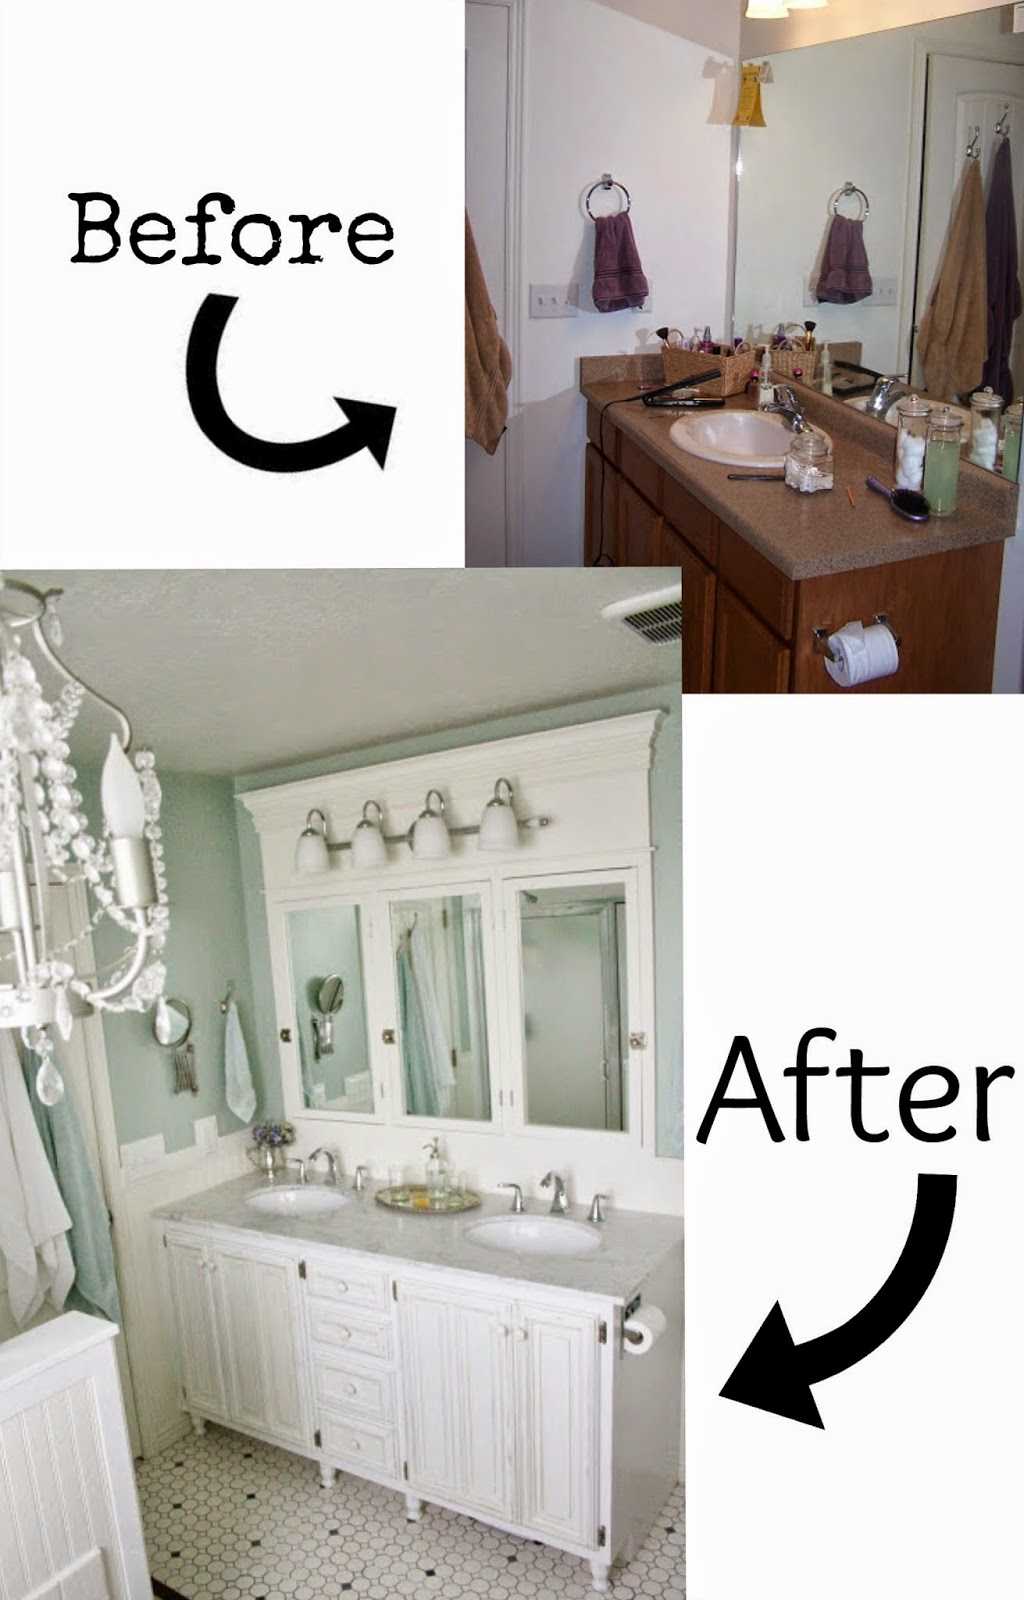 Diy Bathroom Renovation Uk pneumatic addict : 7 best diy bathroom vanity makeovers